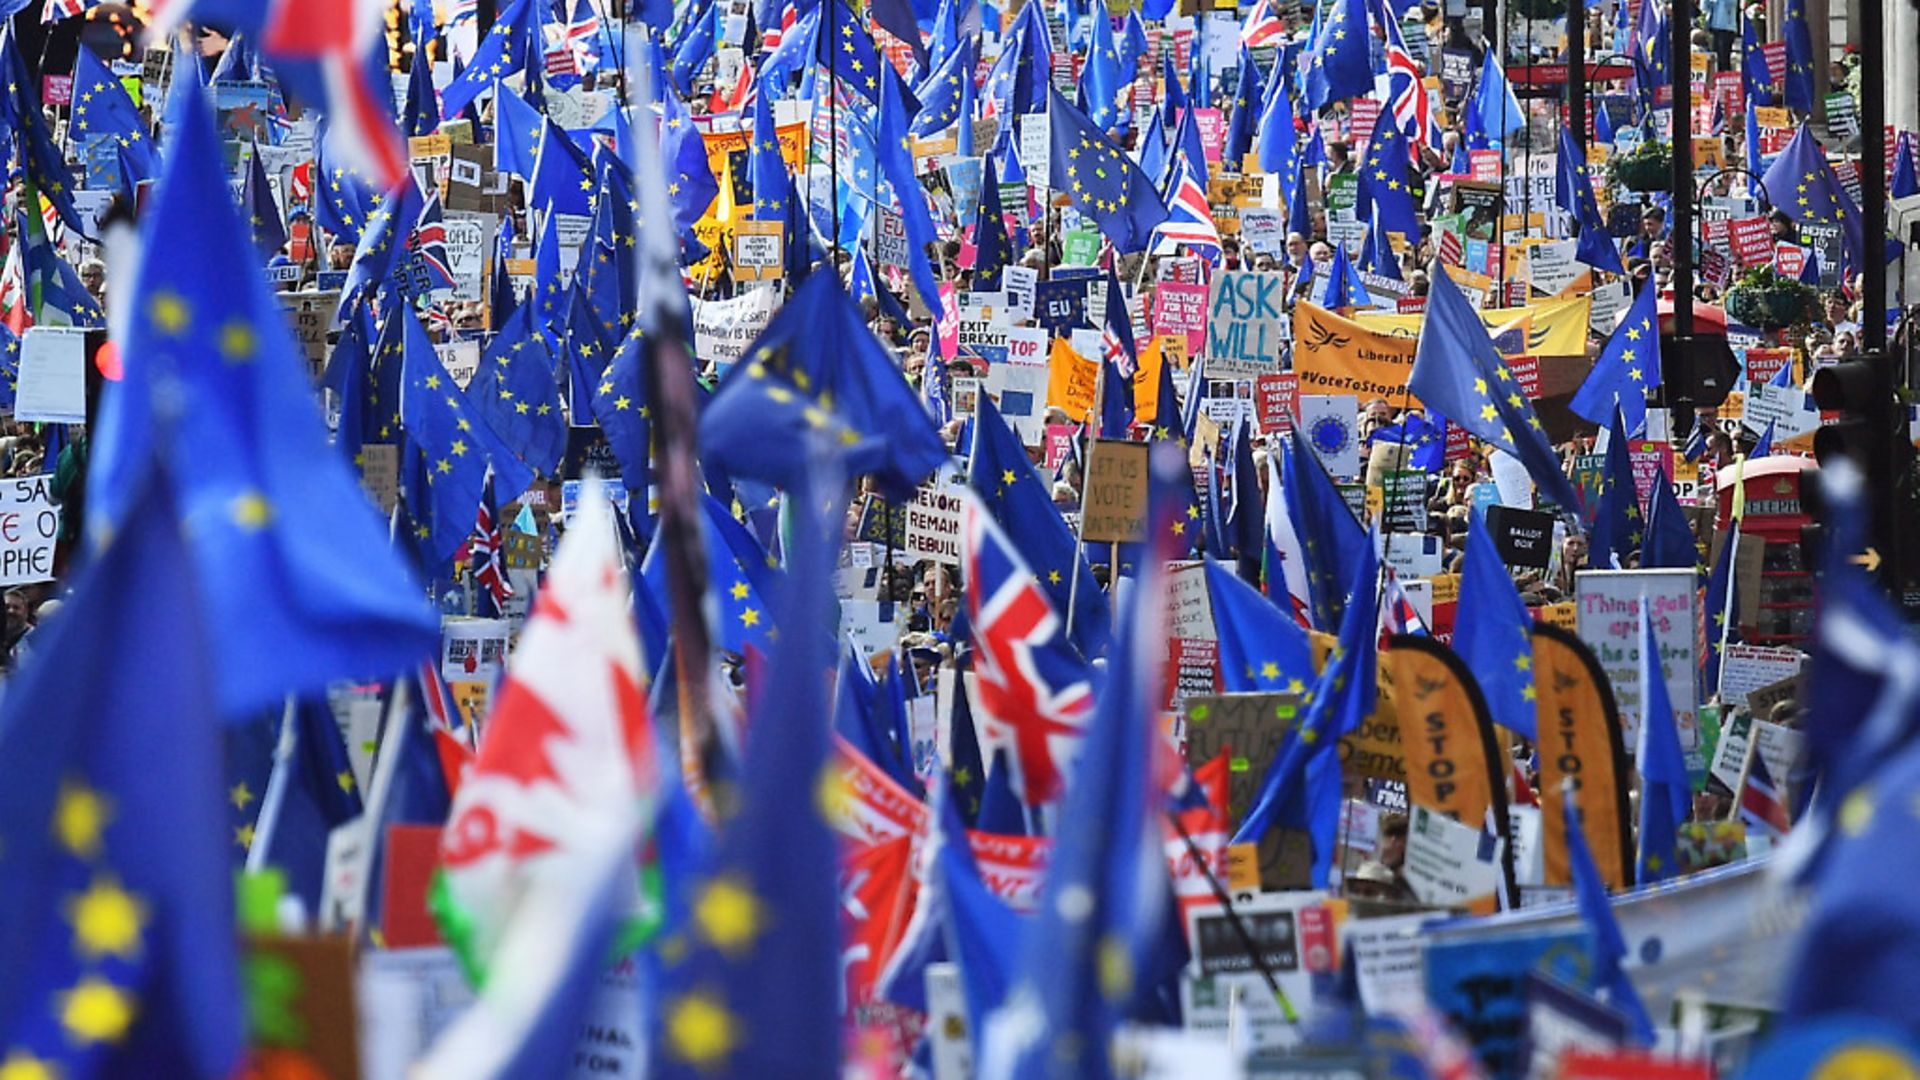 Campaigners at the People's Vote march in London as MPs vote on Boris Johnson's Brexit deal. Photograph: Victoria Jones/PA. - Credit: PA Wire/PA Images